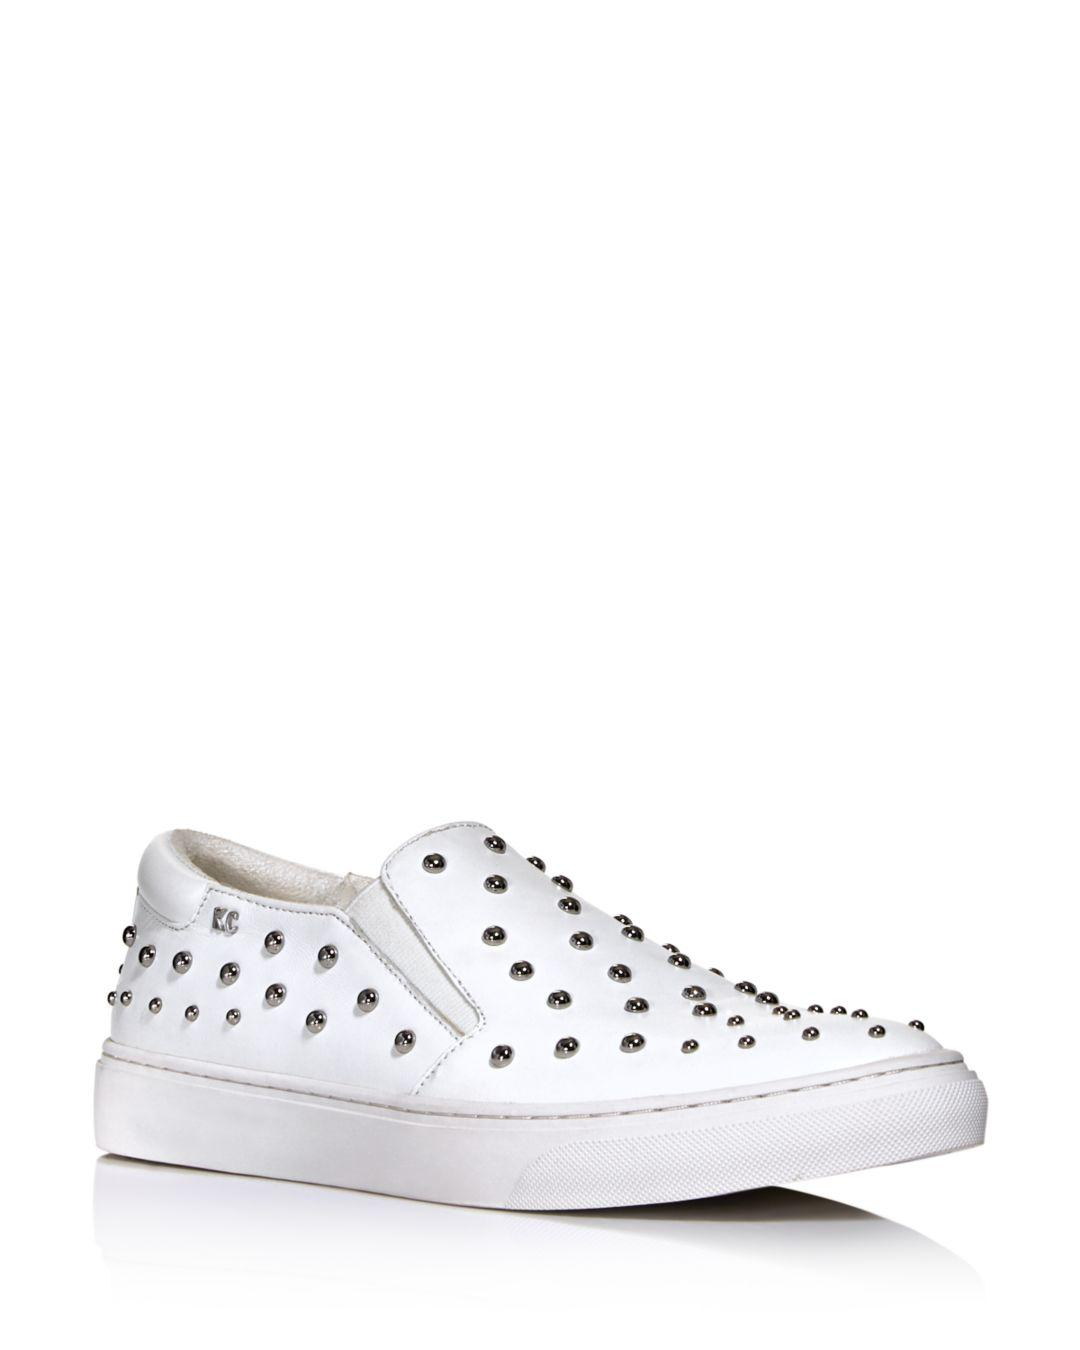 c13c7e3b17f Lyst - Kenneth Cole Women s Mara Stud Leather Slip-on Sneakers in White